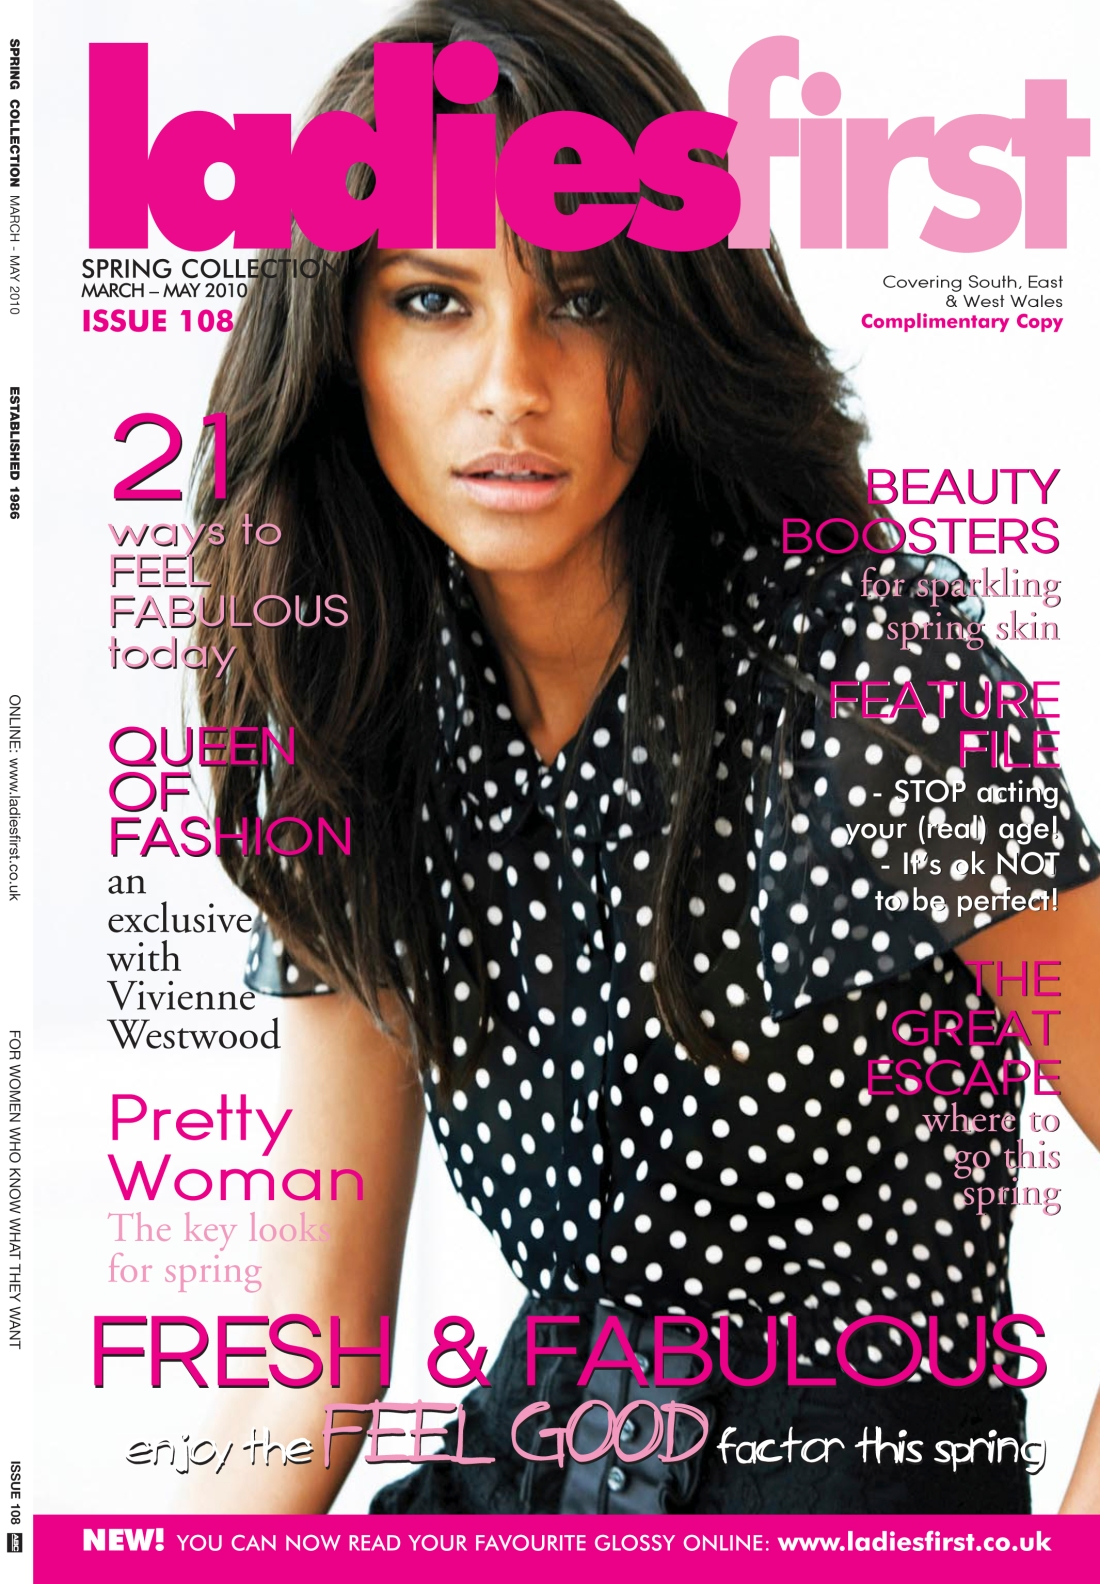 Ladies First Spring 2010 issue-front cover- Amy Lewis